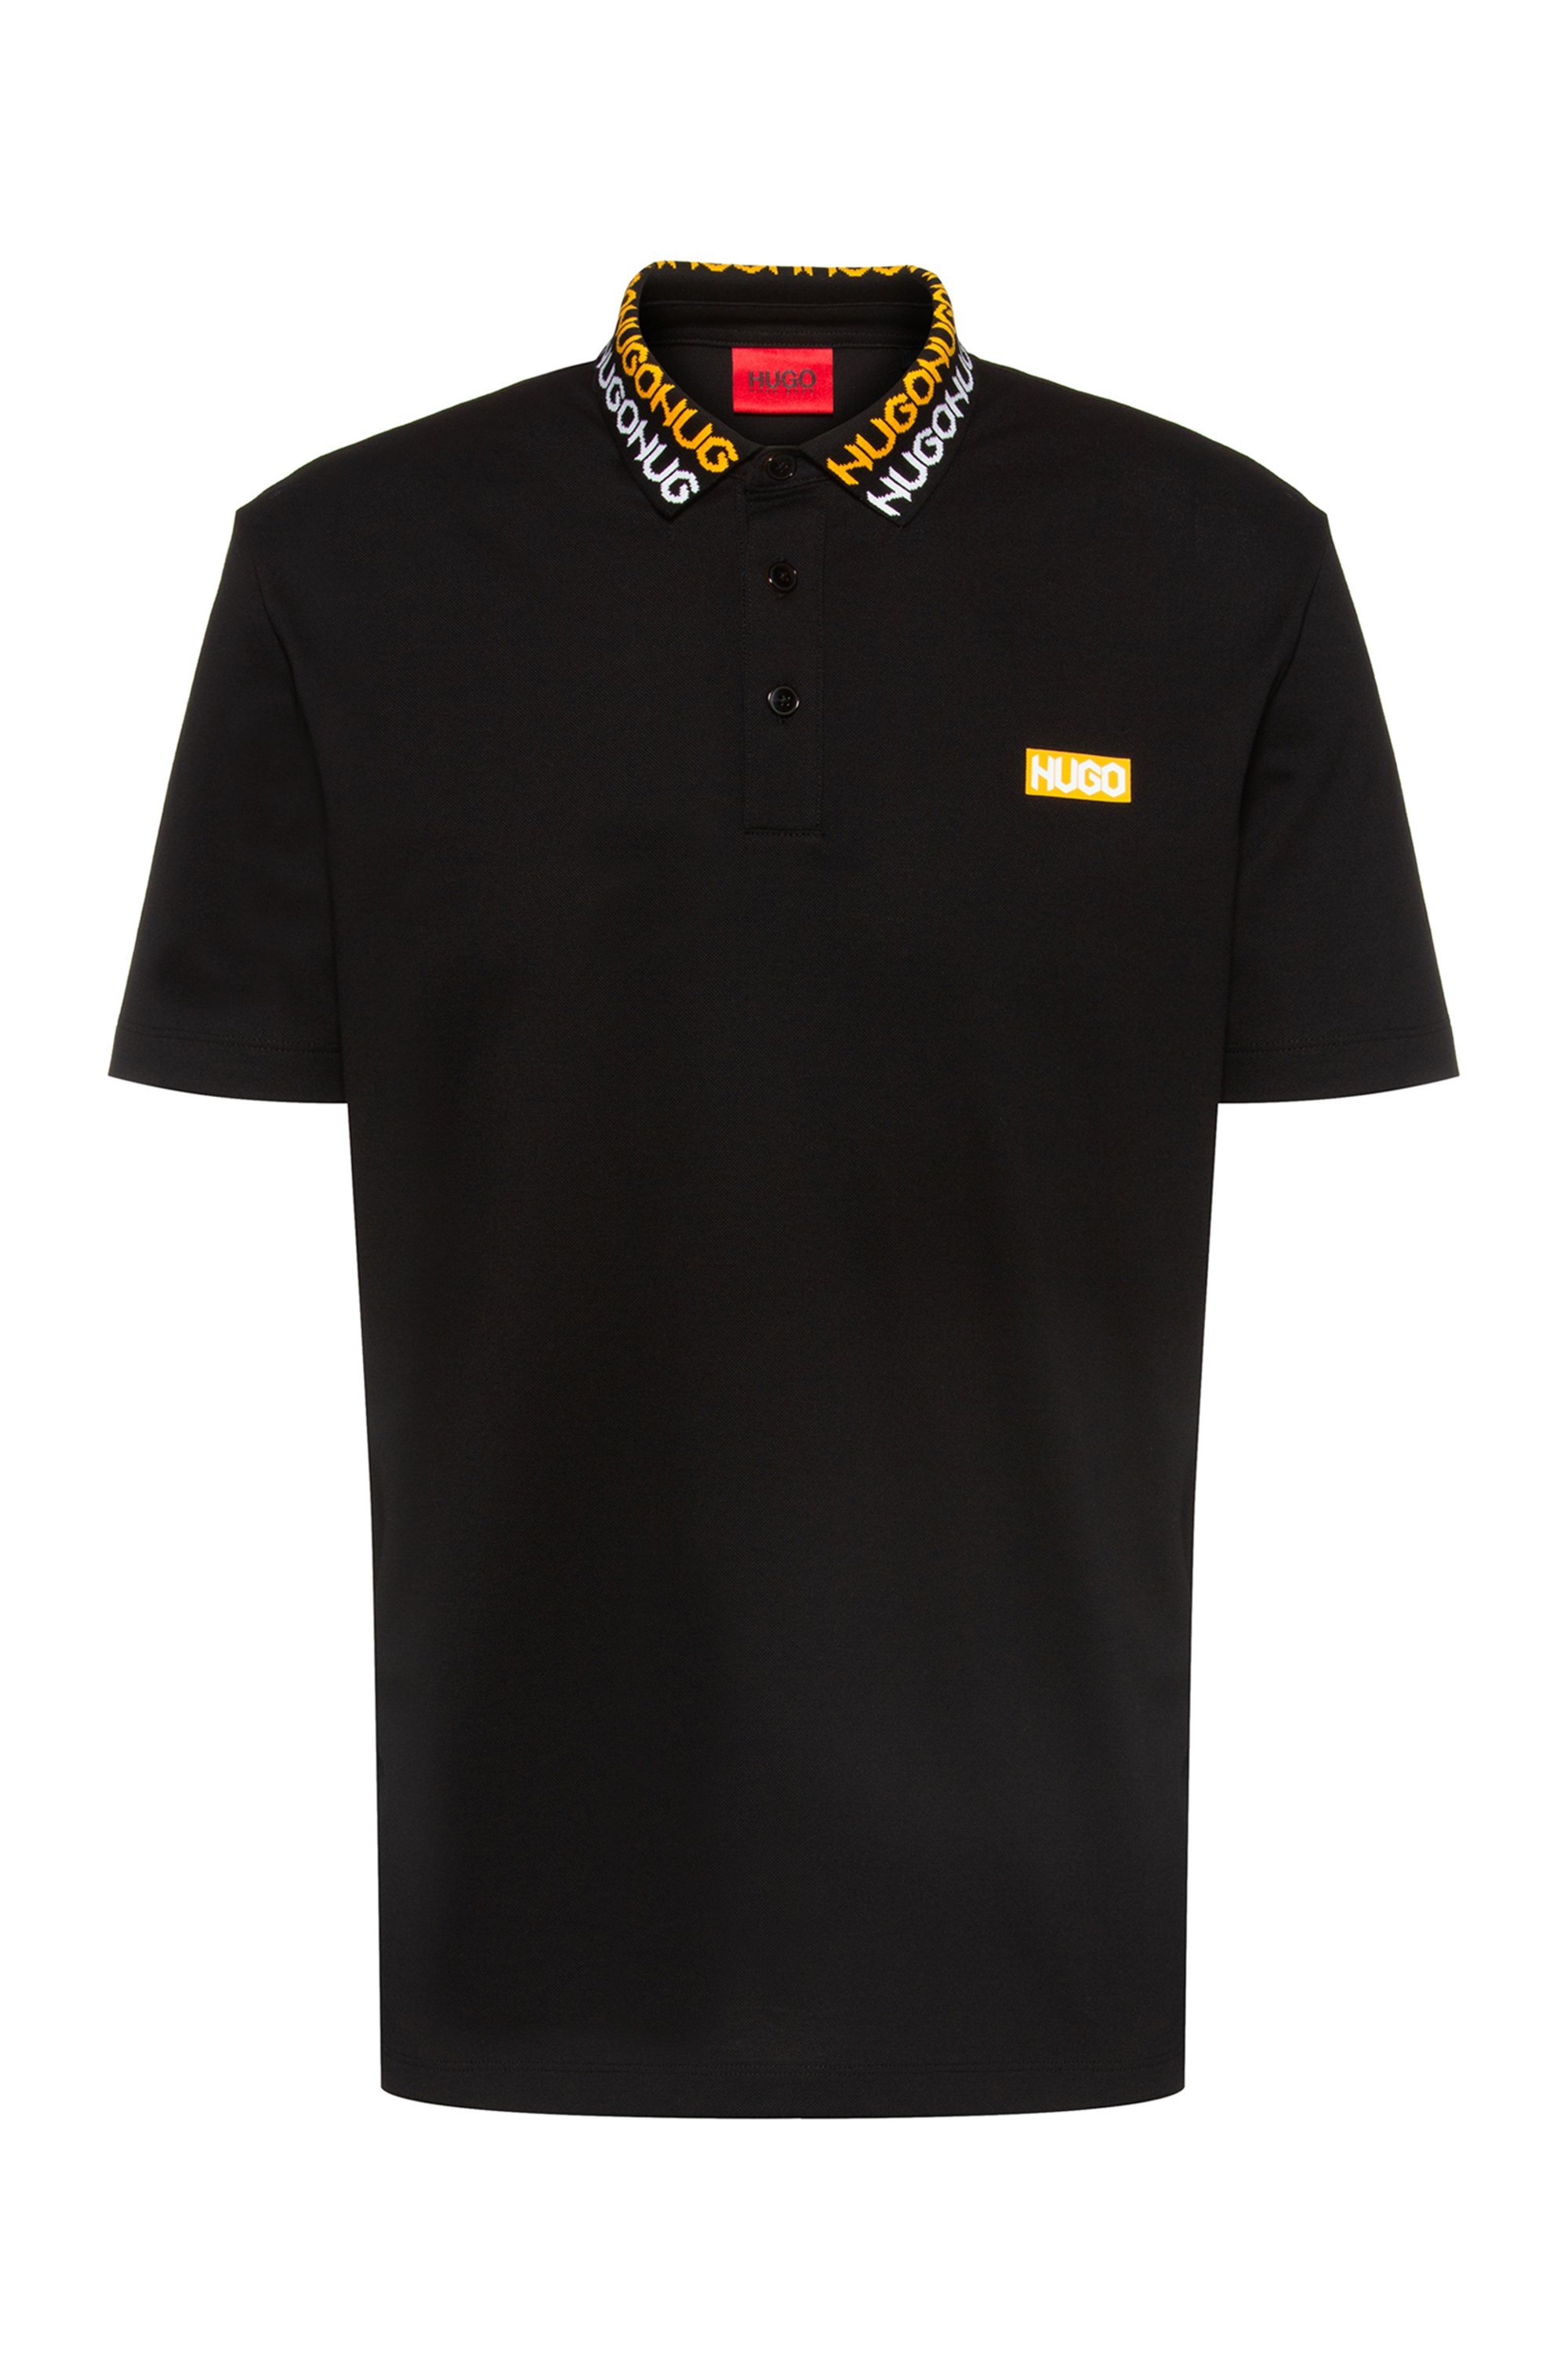 Permafit-cotton polo shirt with tyre-print logos, Black